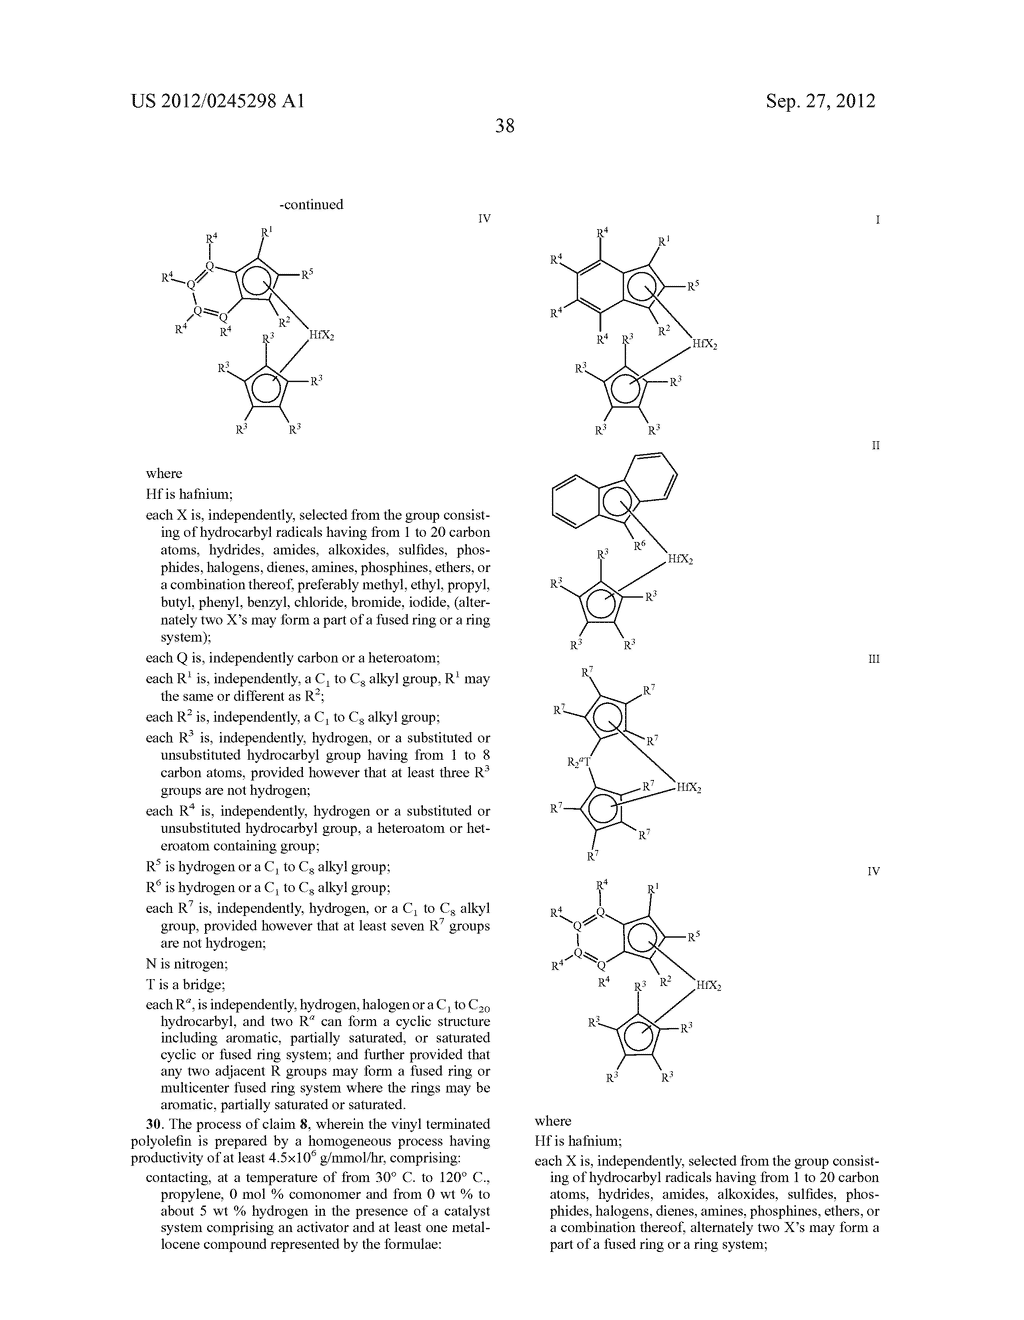 Amphiphilic Block Polymers Prepared by Alkene Metathesis - diagram, schematic, and image 39